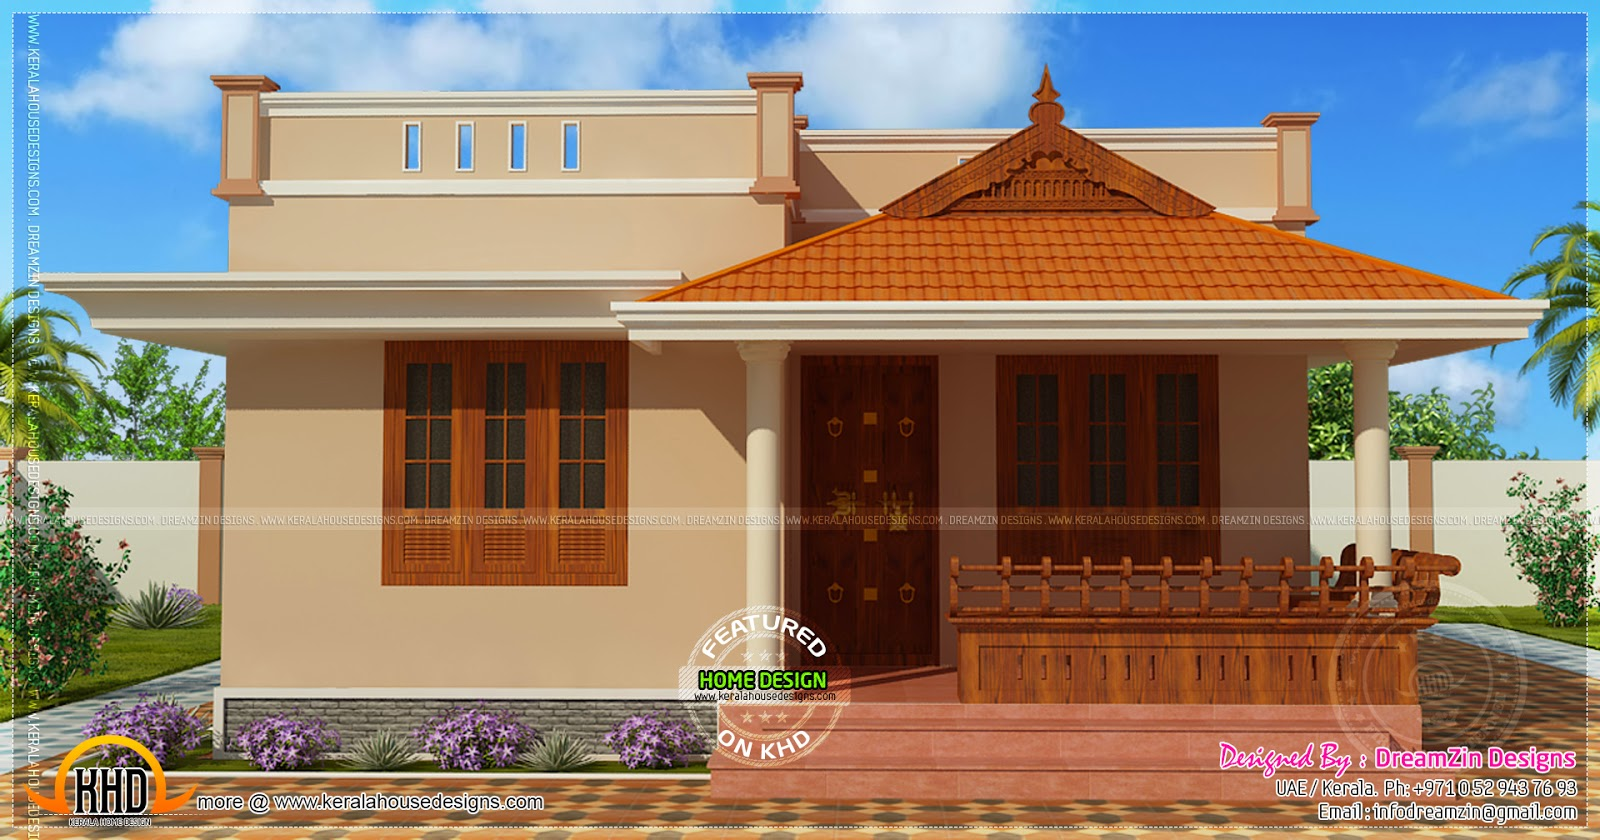 Small budget home plans design kerala male models picture for Small house plans in kerala